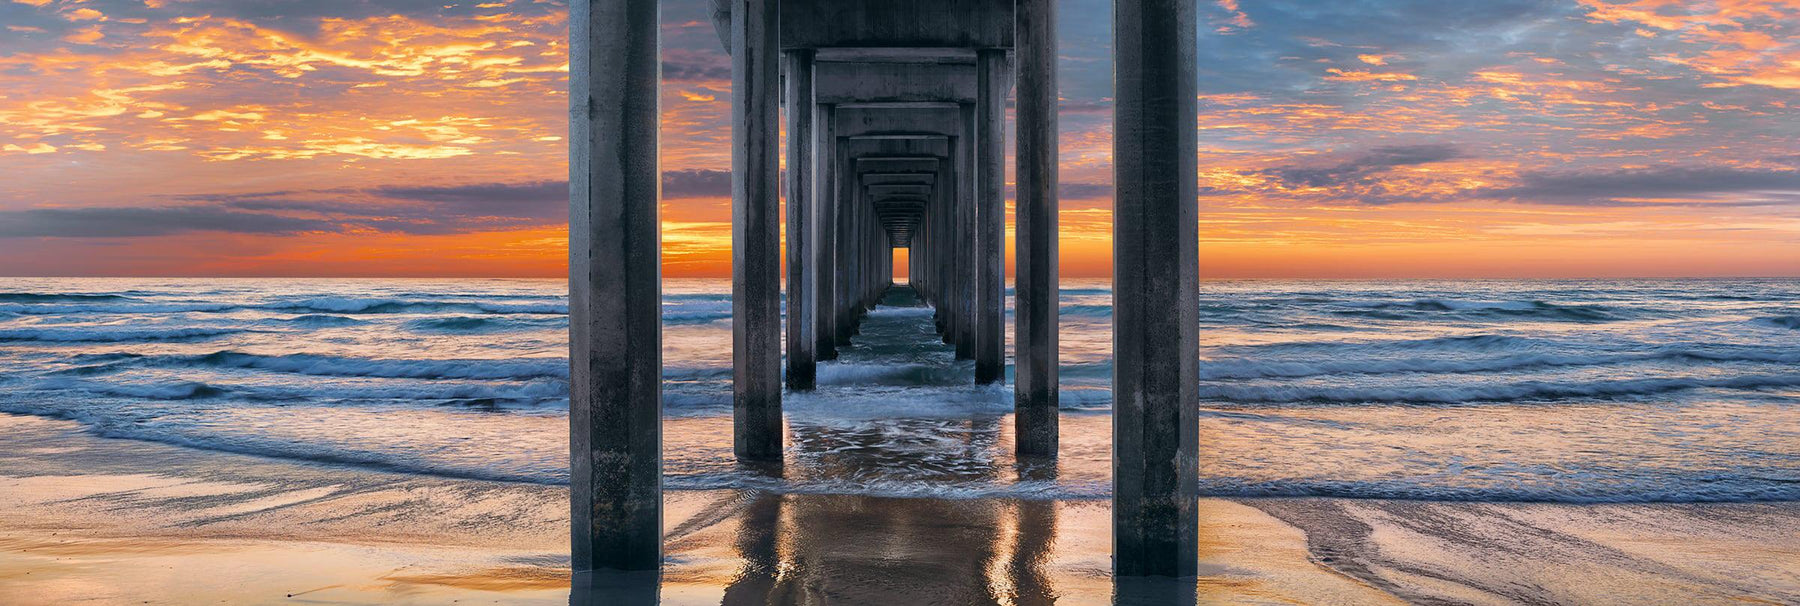 Waves crashing onto the beach and Scripps Pier in La Jolla California at sunset